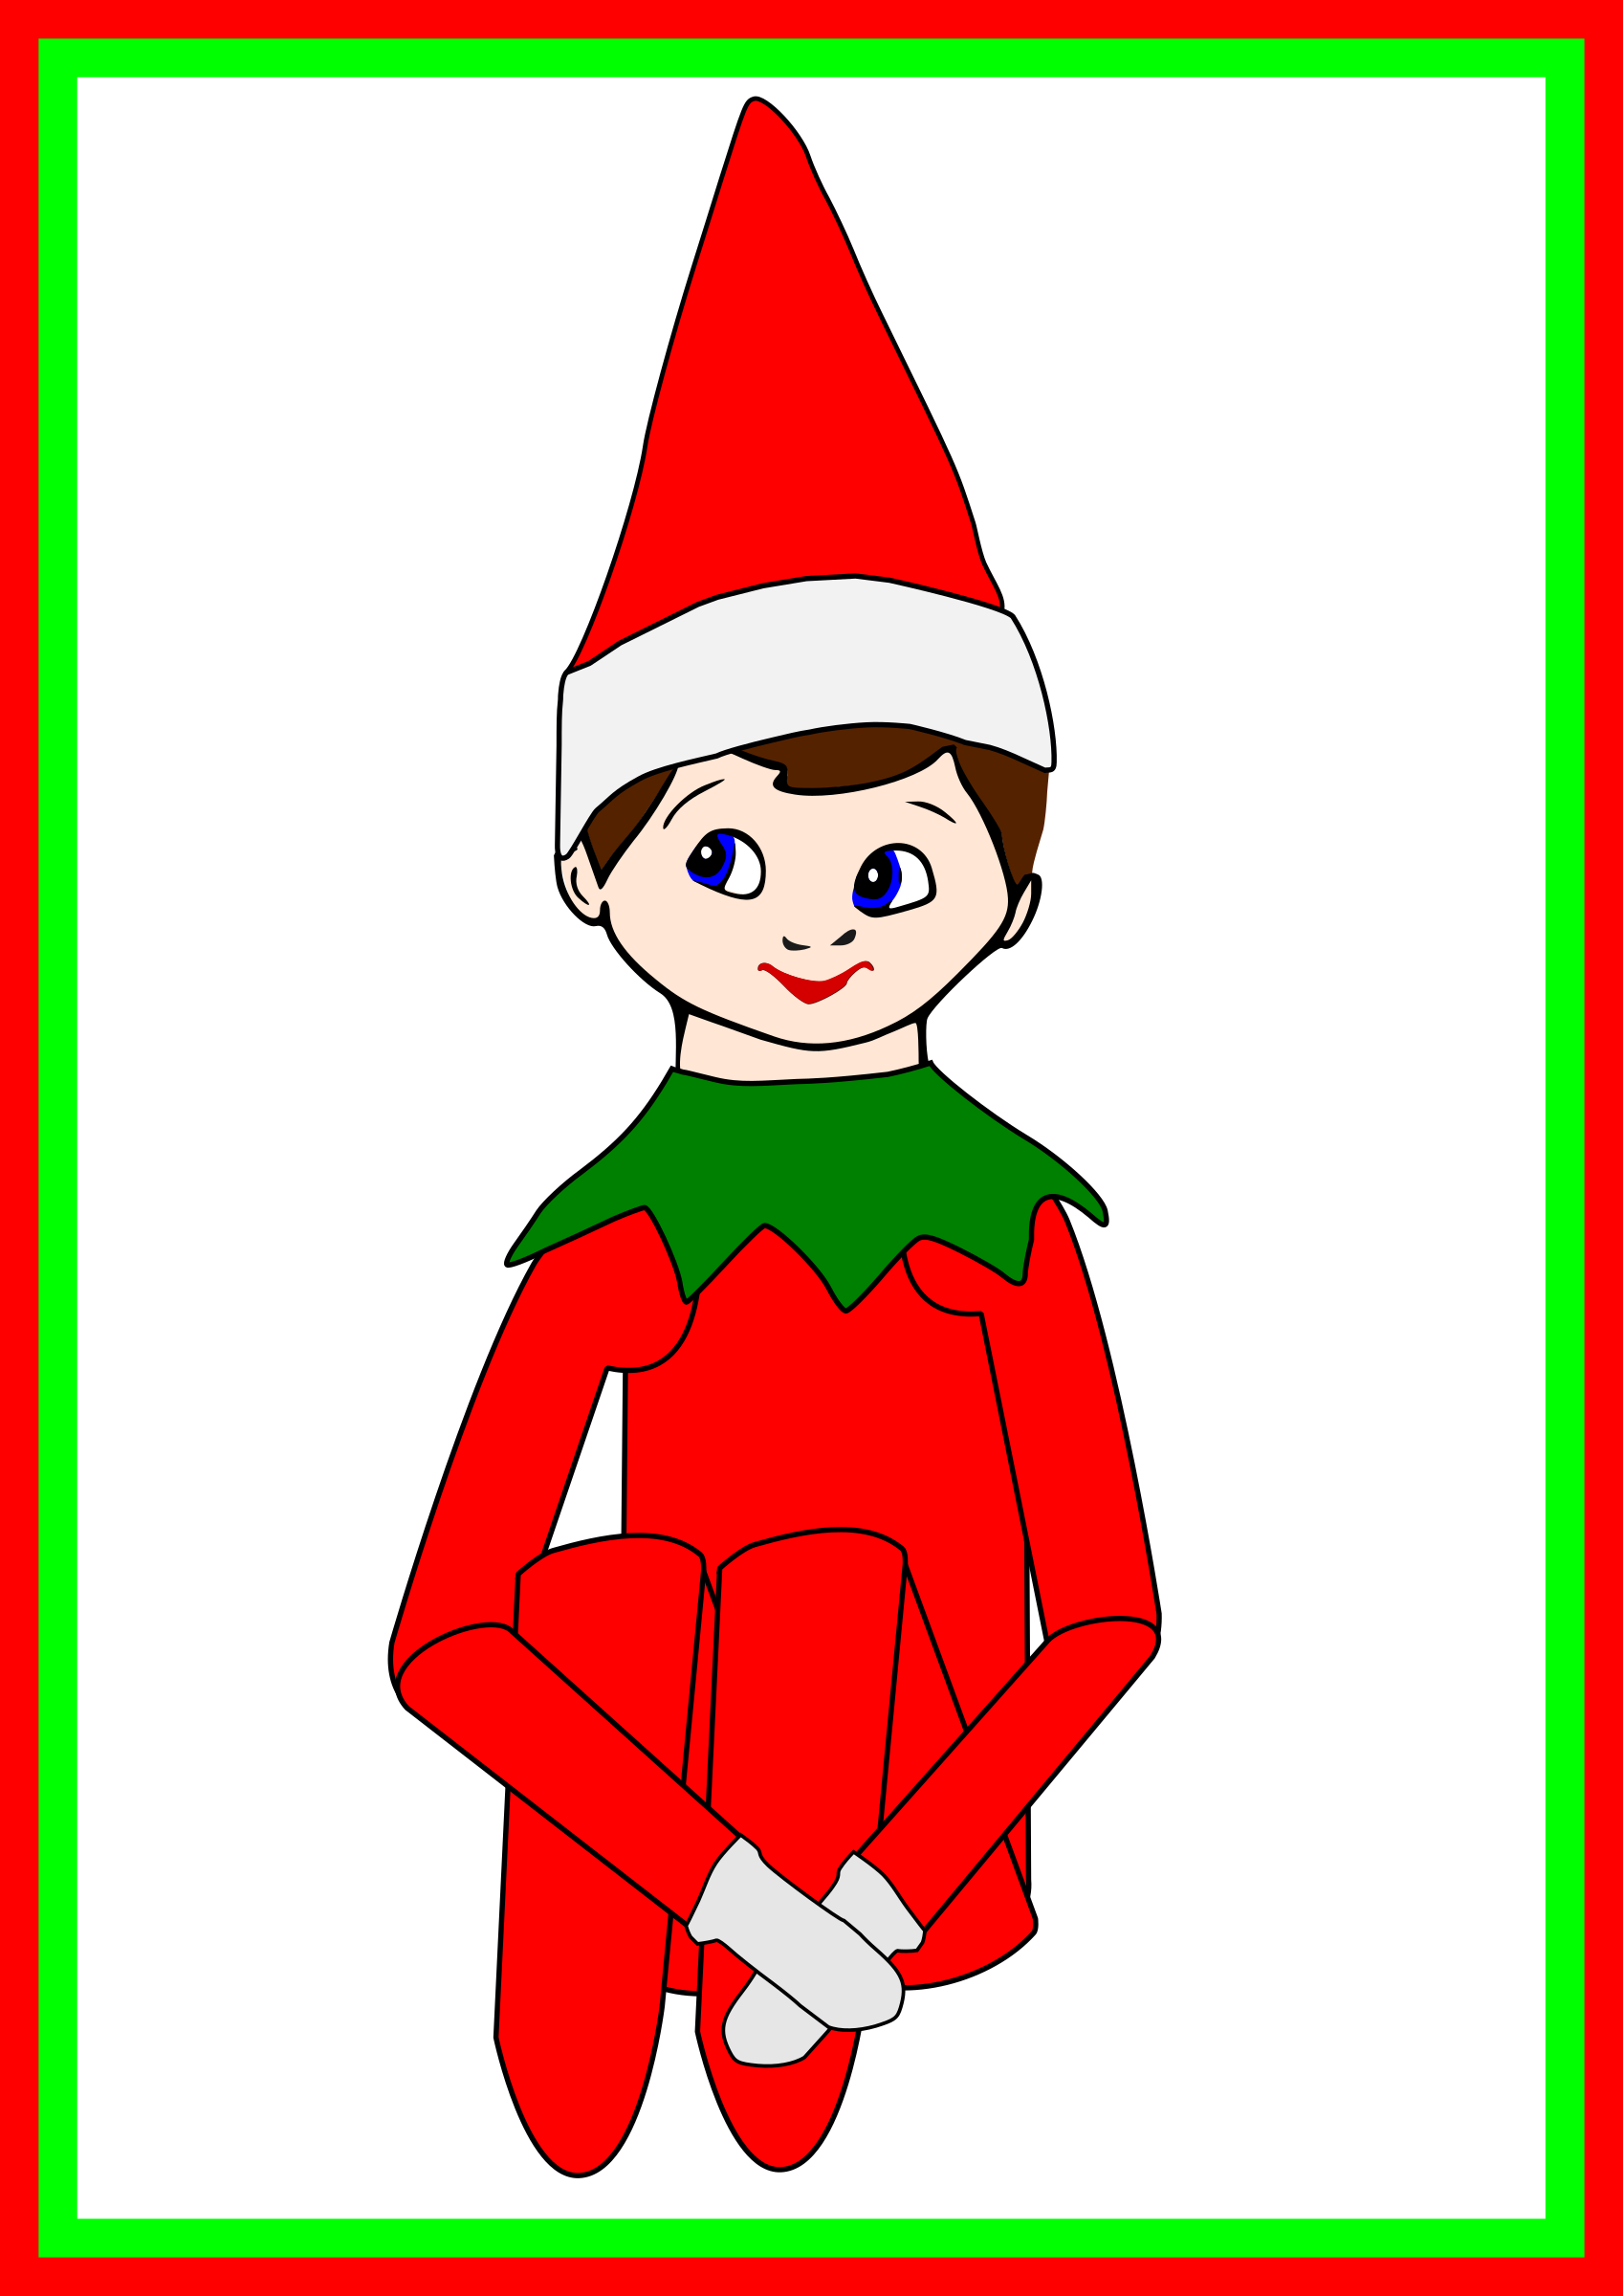 AlanSpeak Elf on the Shelf 03 by alanspeak